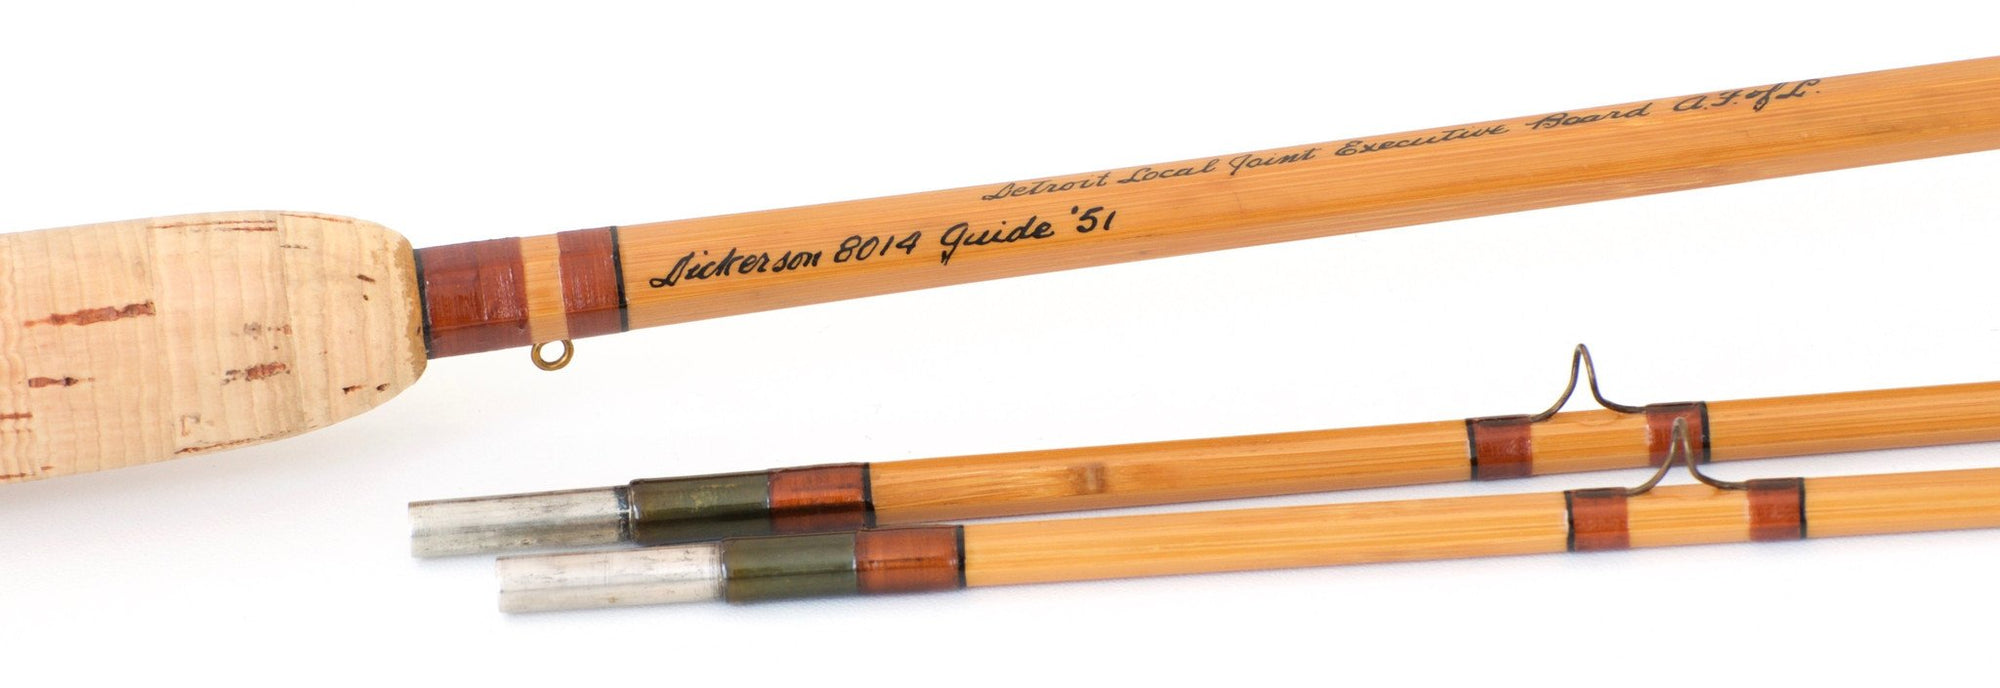 Lyle Dickerson -- 8014 Guide Presentation Rod